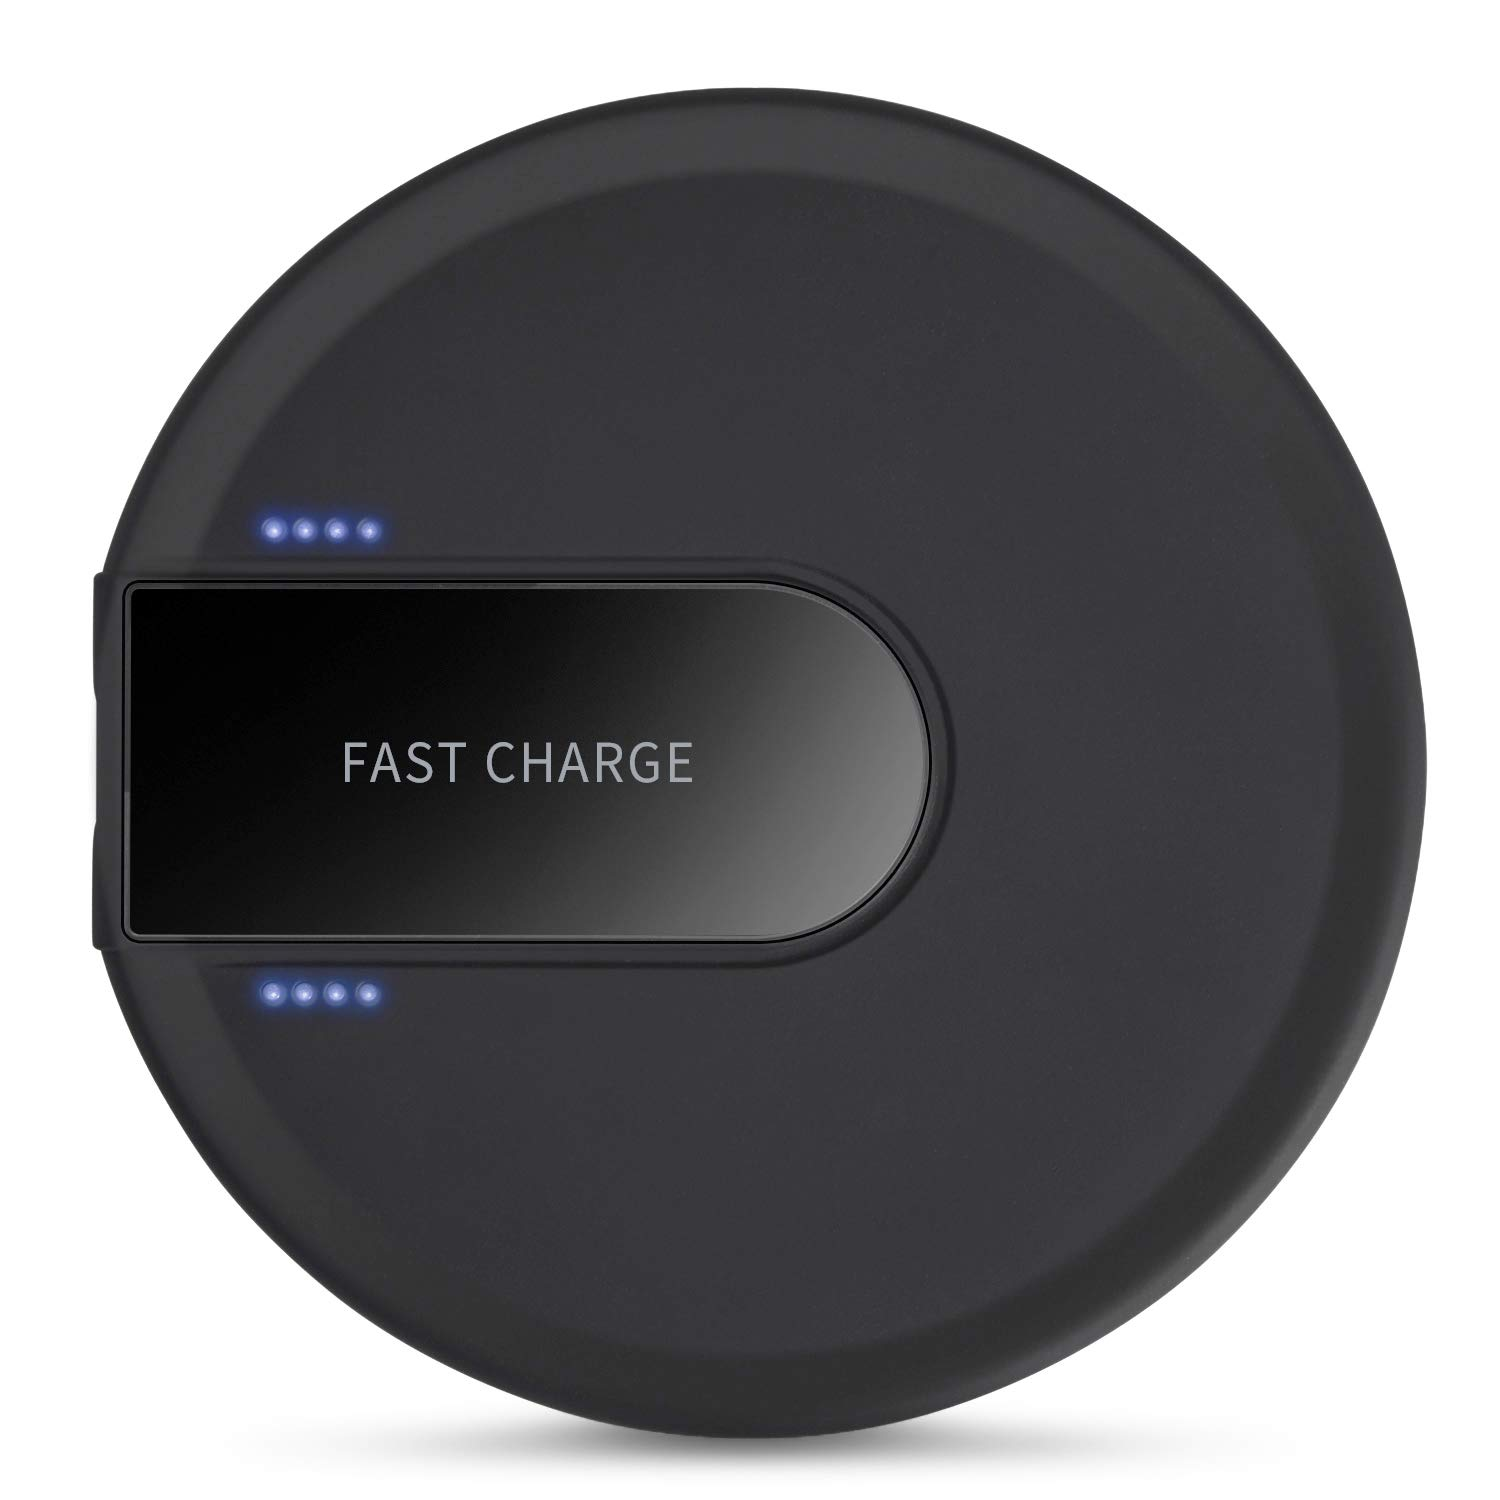 Wireless Charger, Hunletai Wireless Charging Pad Compatible with iPhone Xs/XS Max/XR/X / 8/8 Plus, 10W Compatible for Samsung Galaxy S9 /S8 /S7 - ...